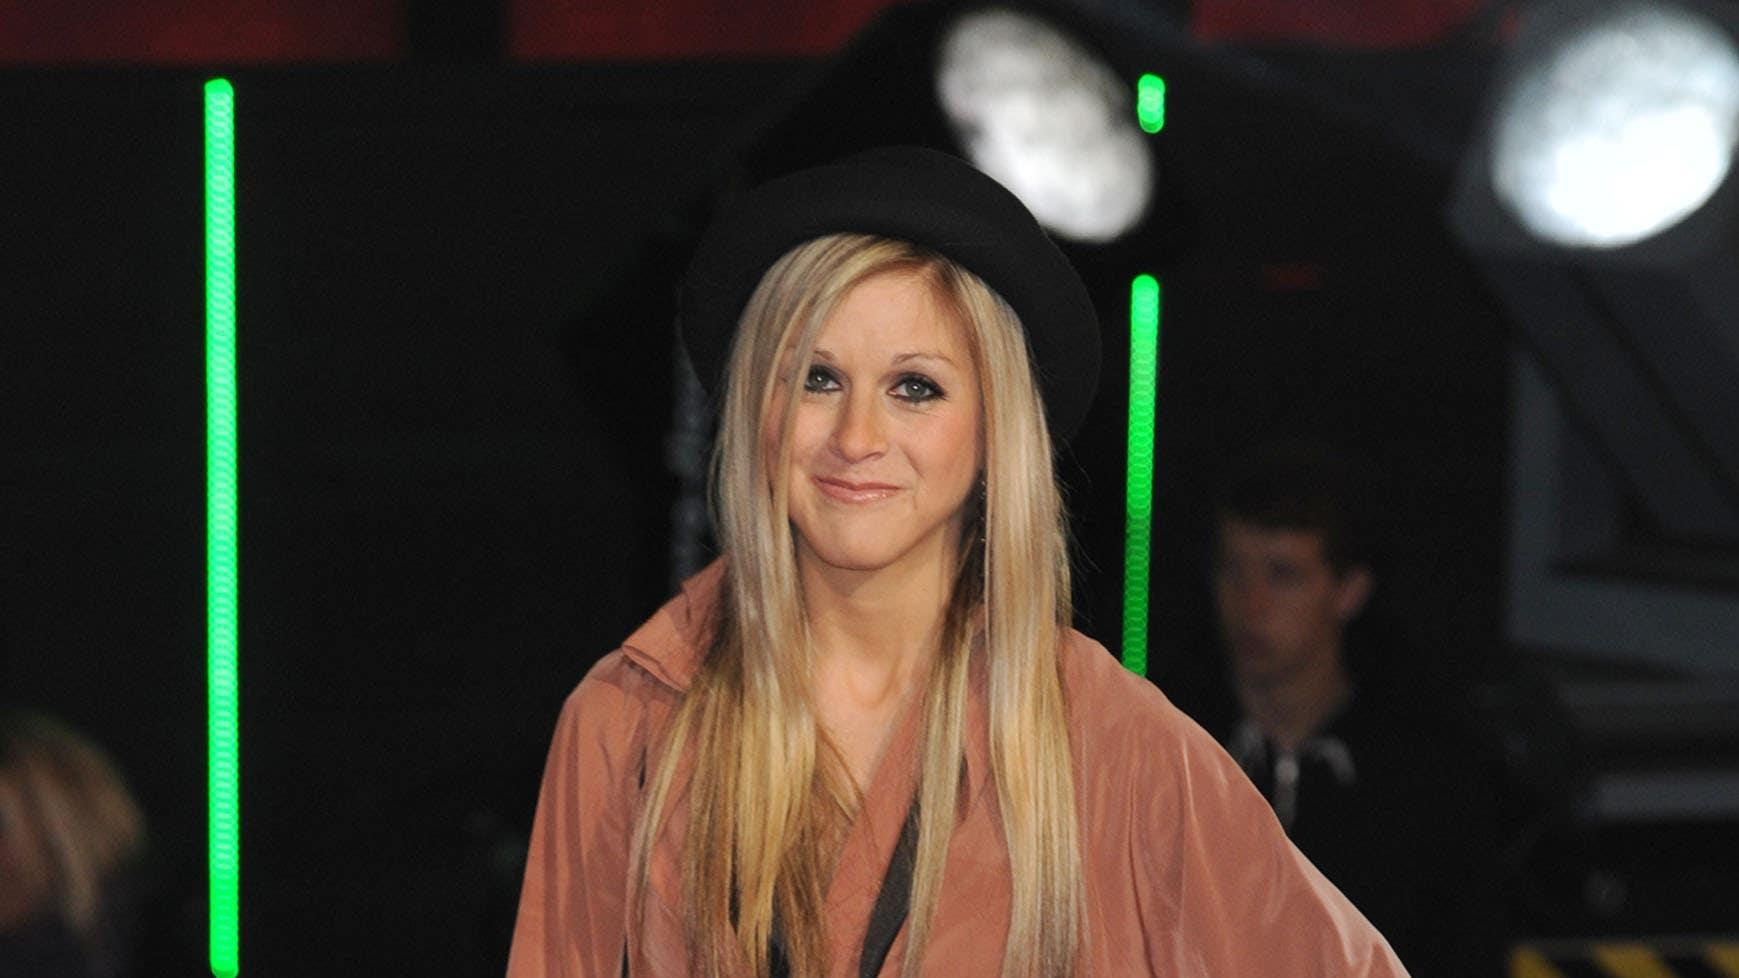 Former Big Brother contestant Nikki Grahame dies aged 38